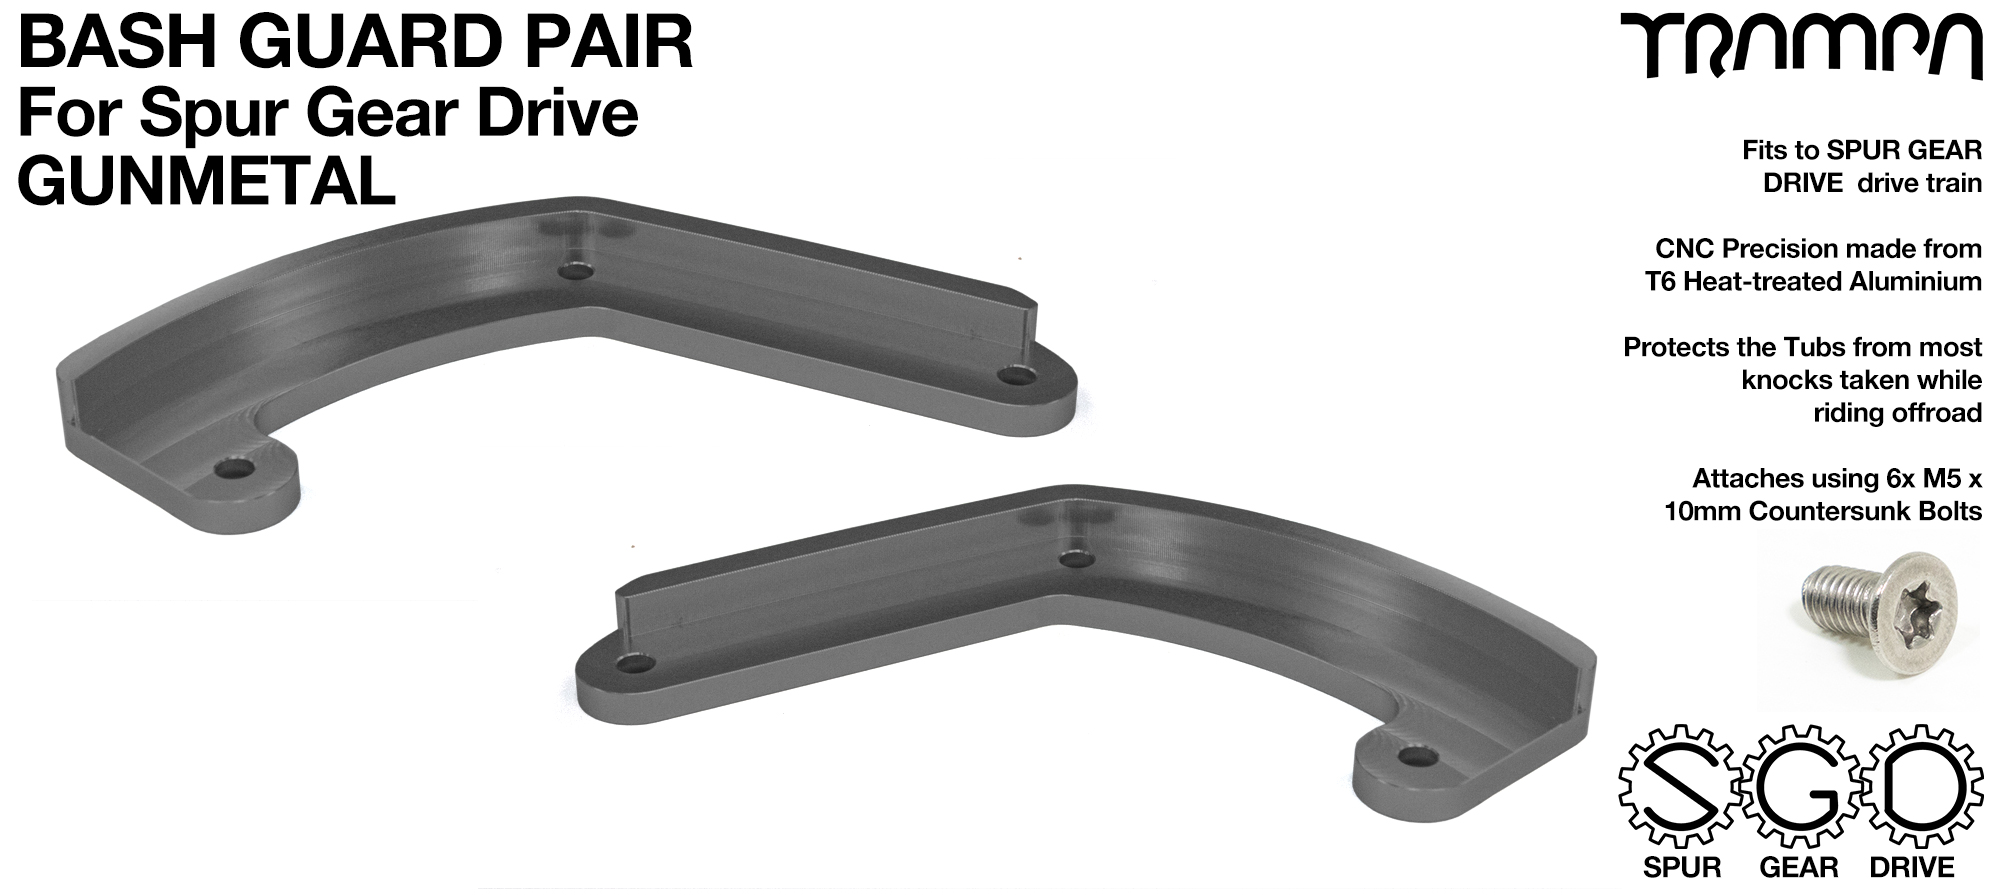 MkII Spur Gear Drive Bash Guards PAIR - GUNMETAL